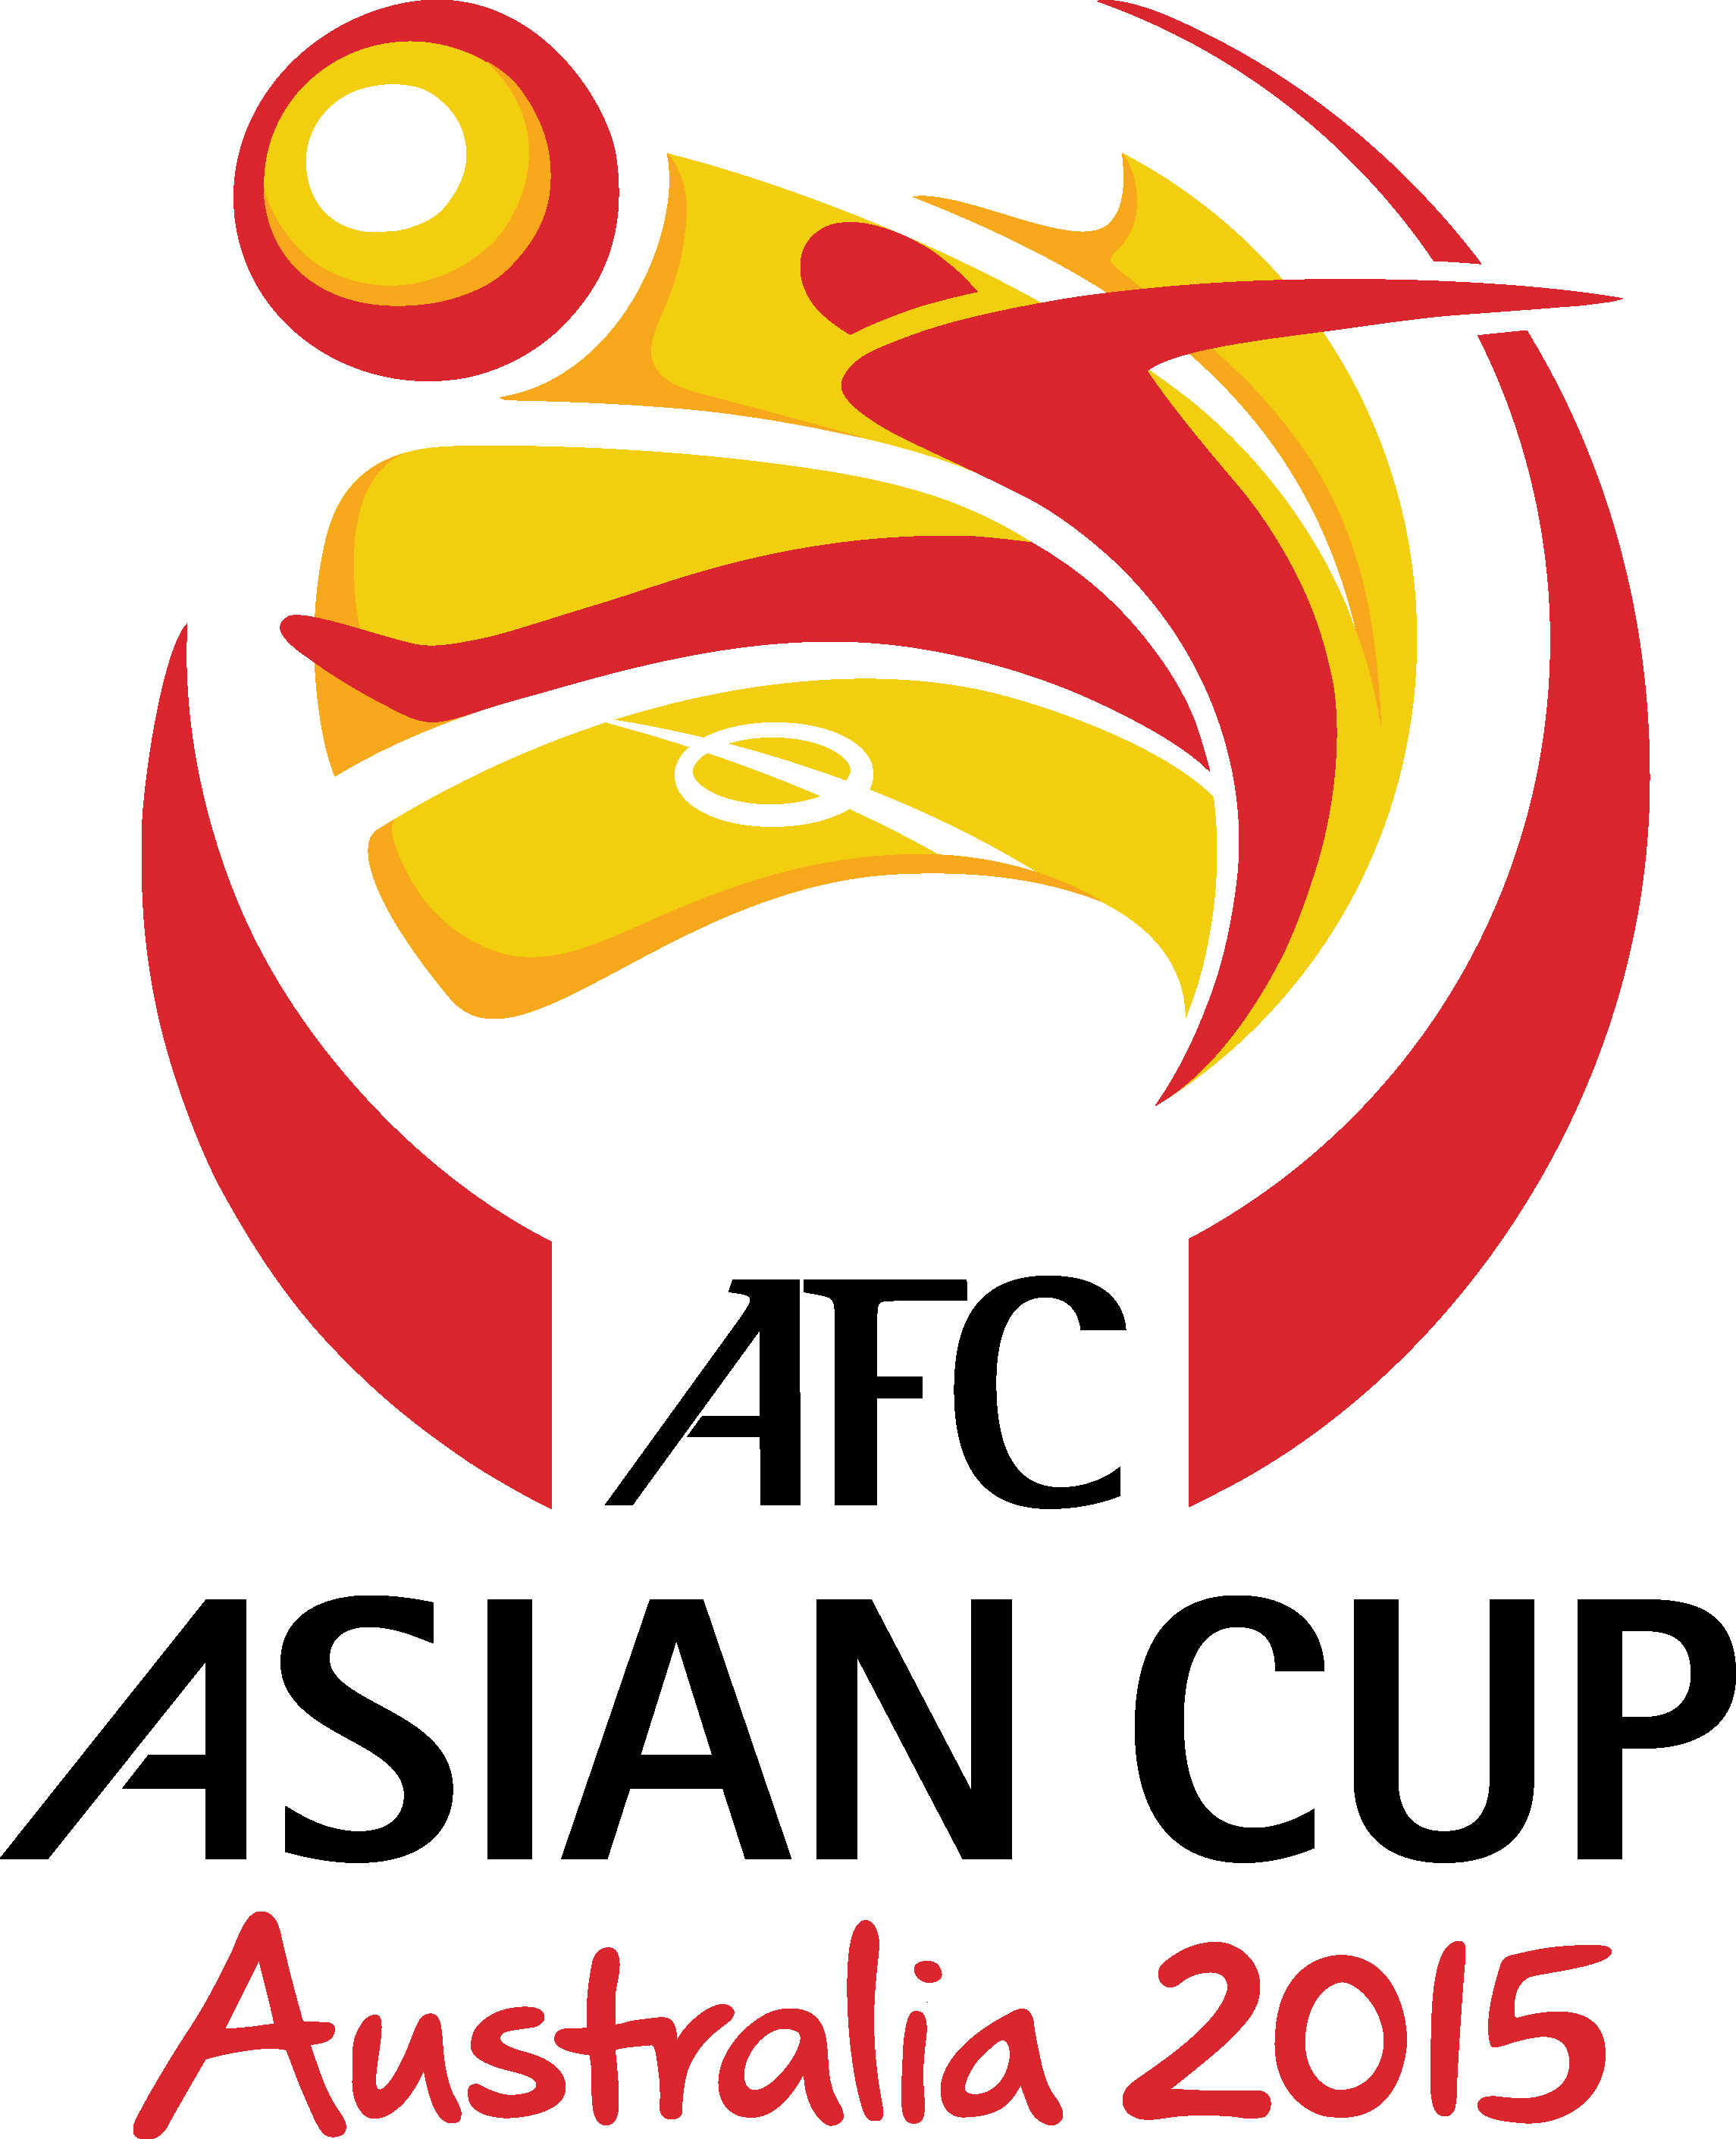 AFC Asian Cup Australia 2015, Media Accreditation is now open